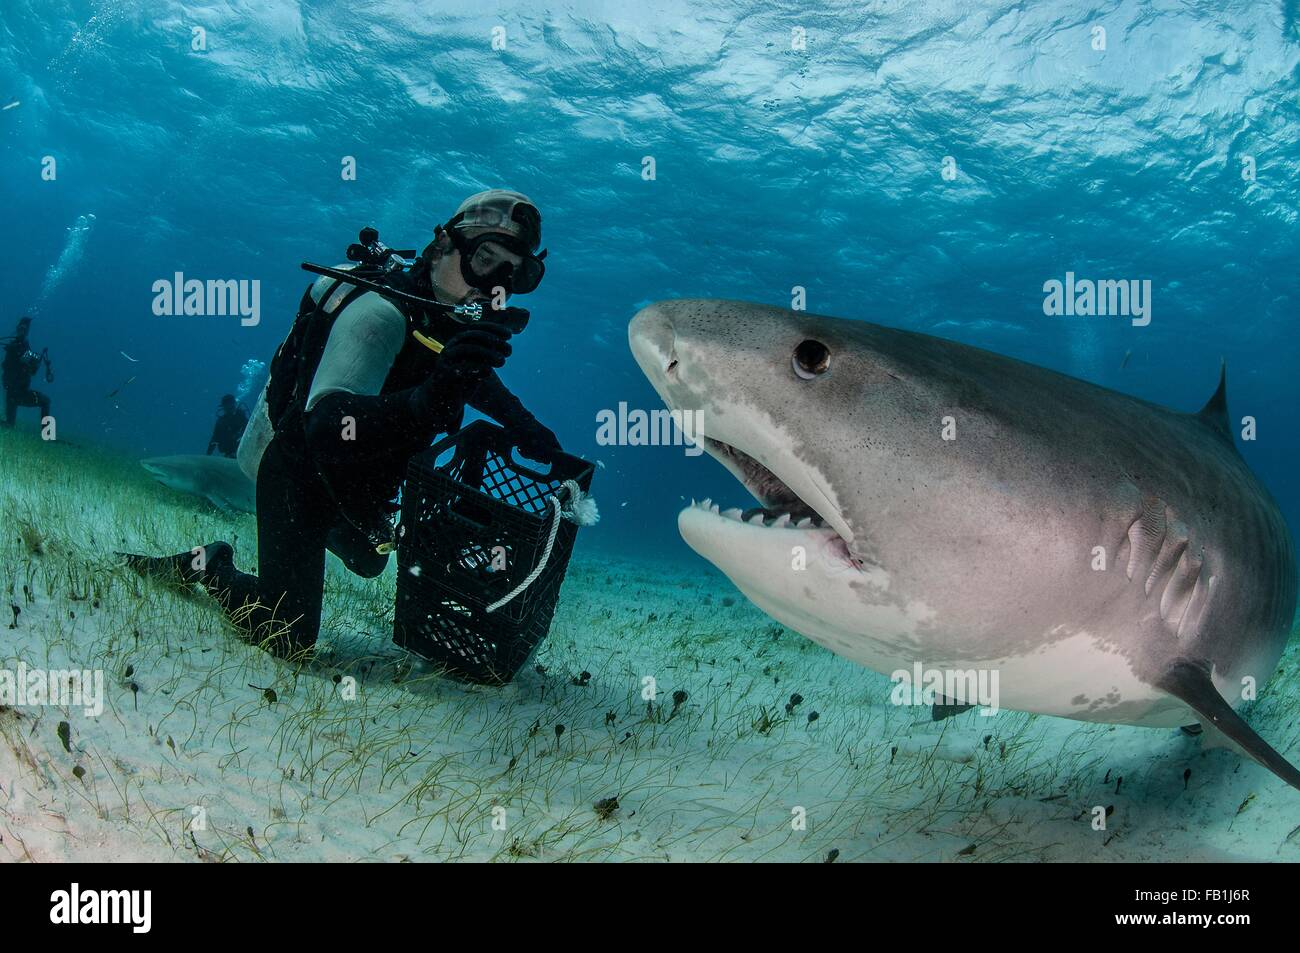 Underwater view of scuba diver on seabed feeding tiger shark, Tiger Beach, Bahamas - Stock Image